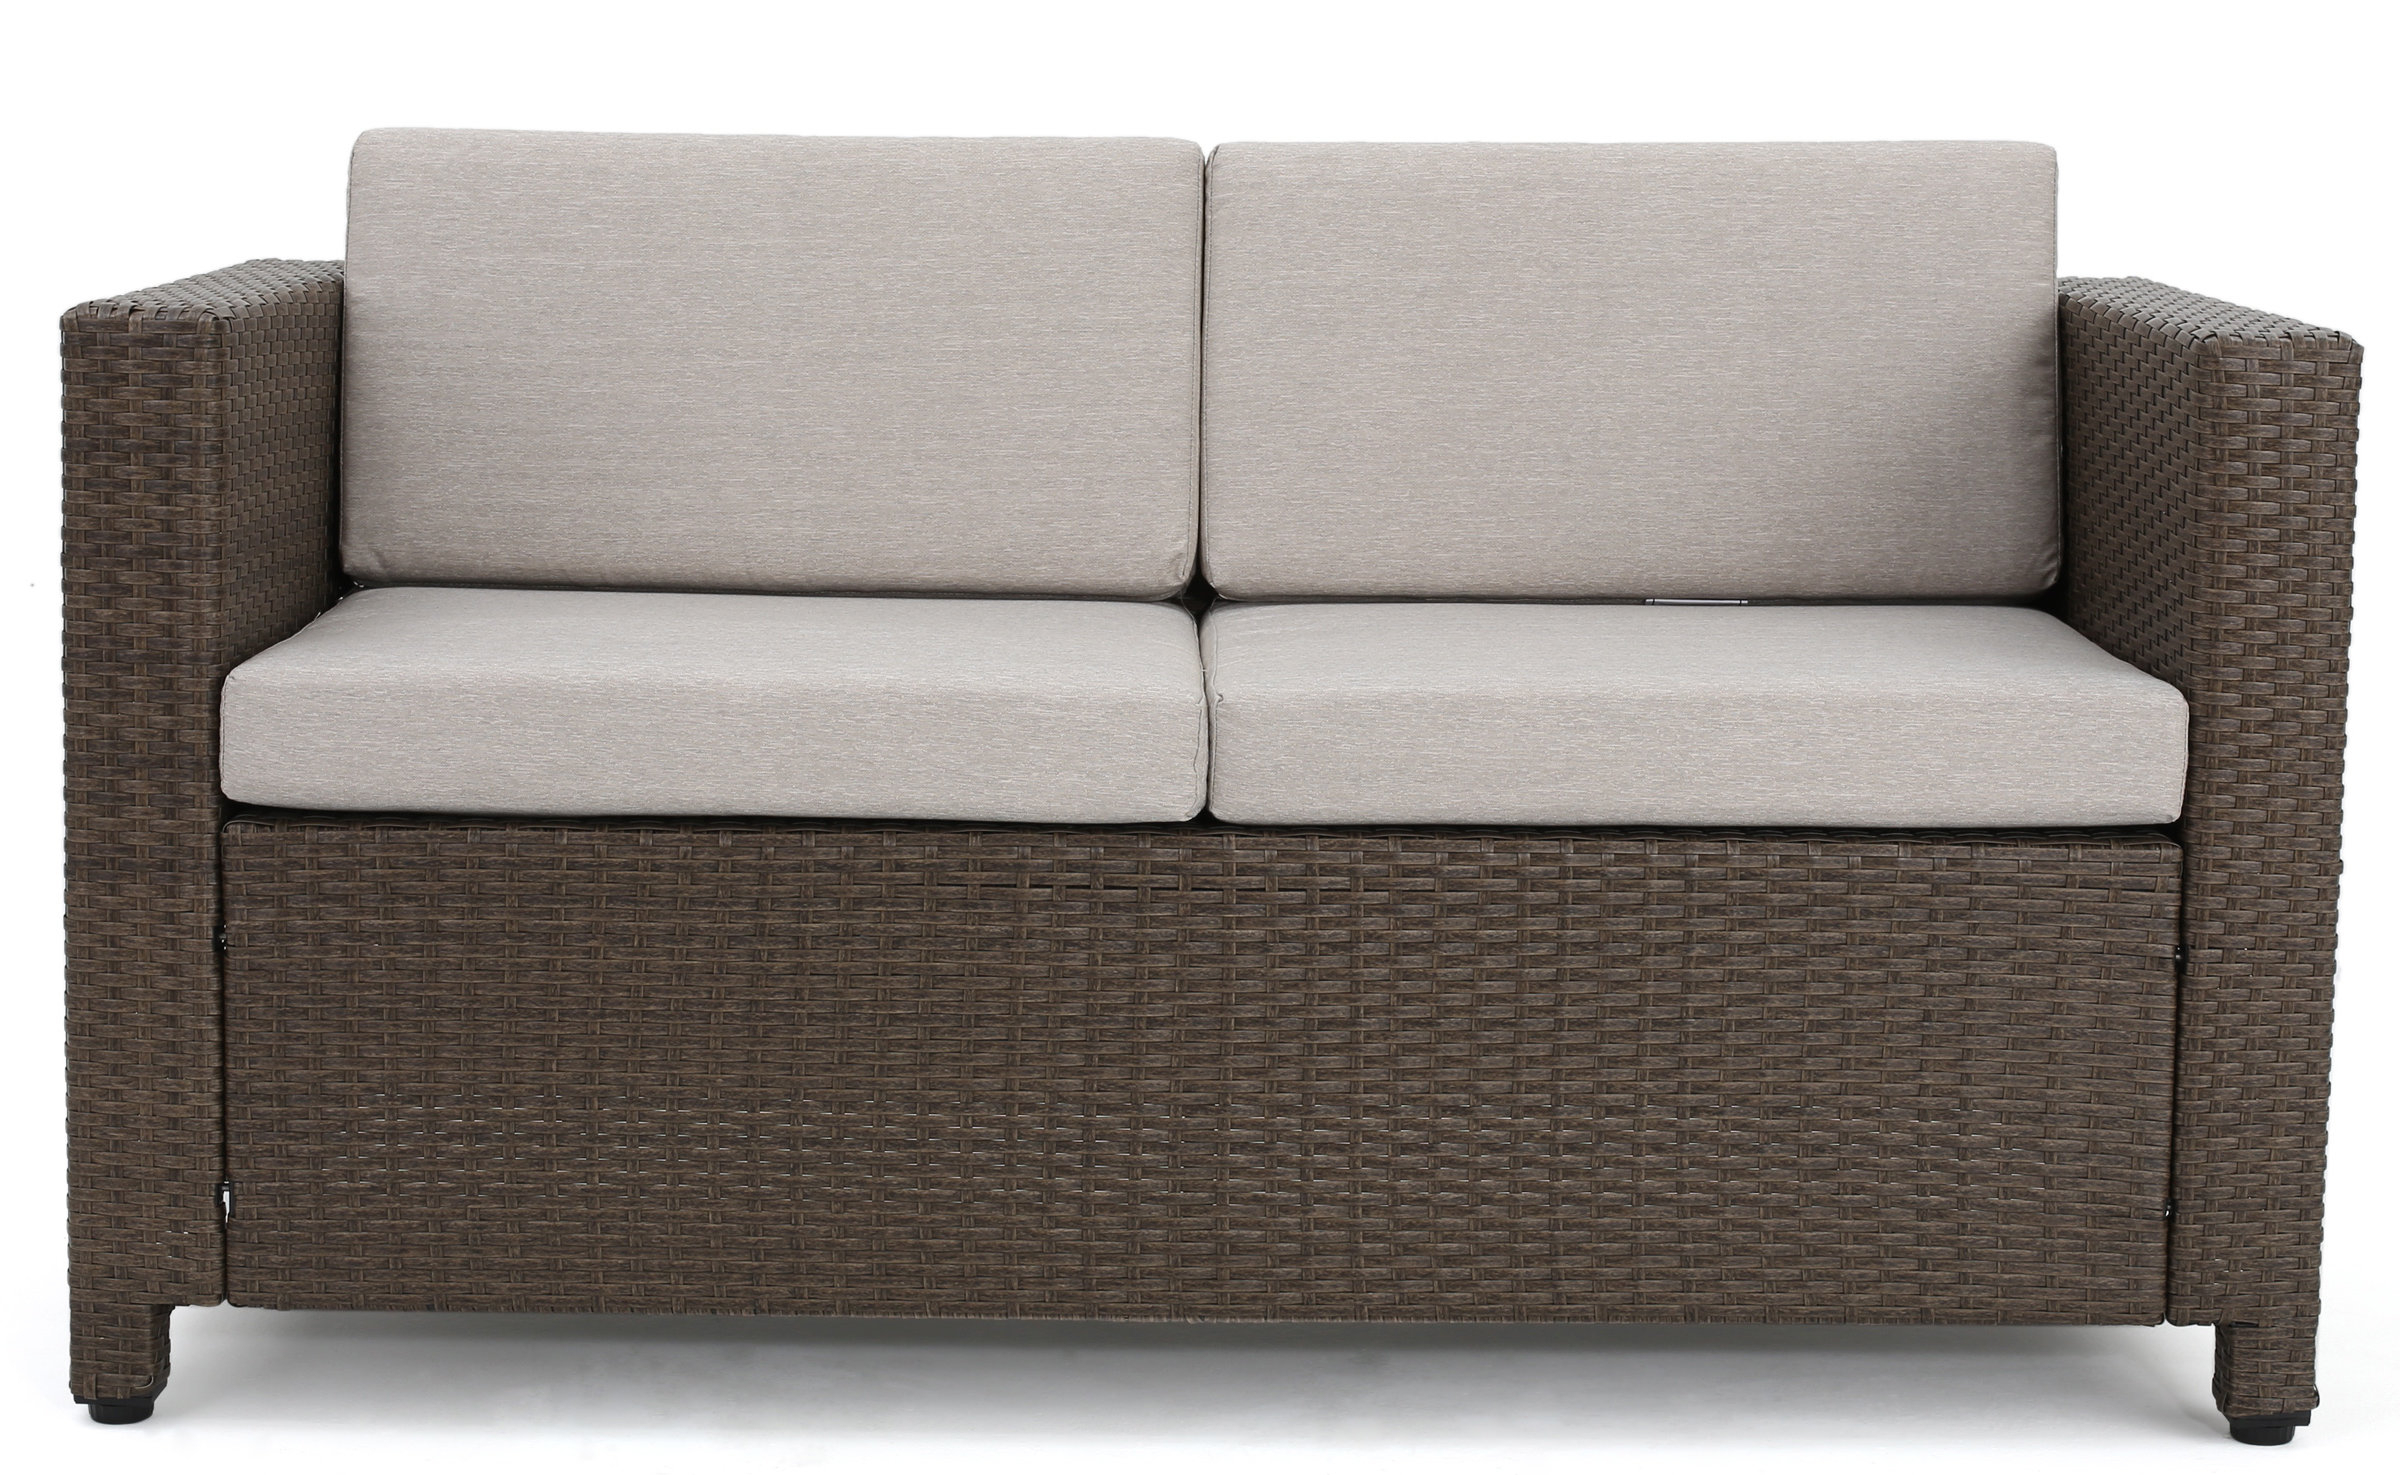 Clifford Patio Sofas With Cushions Pertaining To 2019 Furst Outdoor Loveseat With Cushions (View 2 of 20)